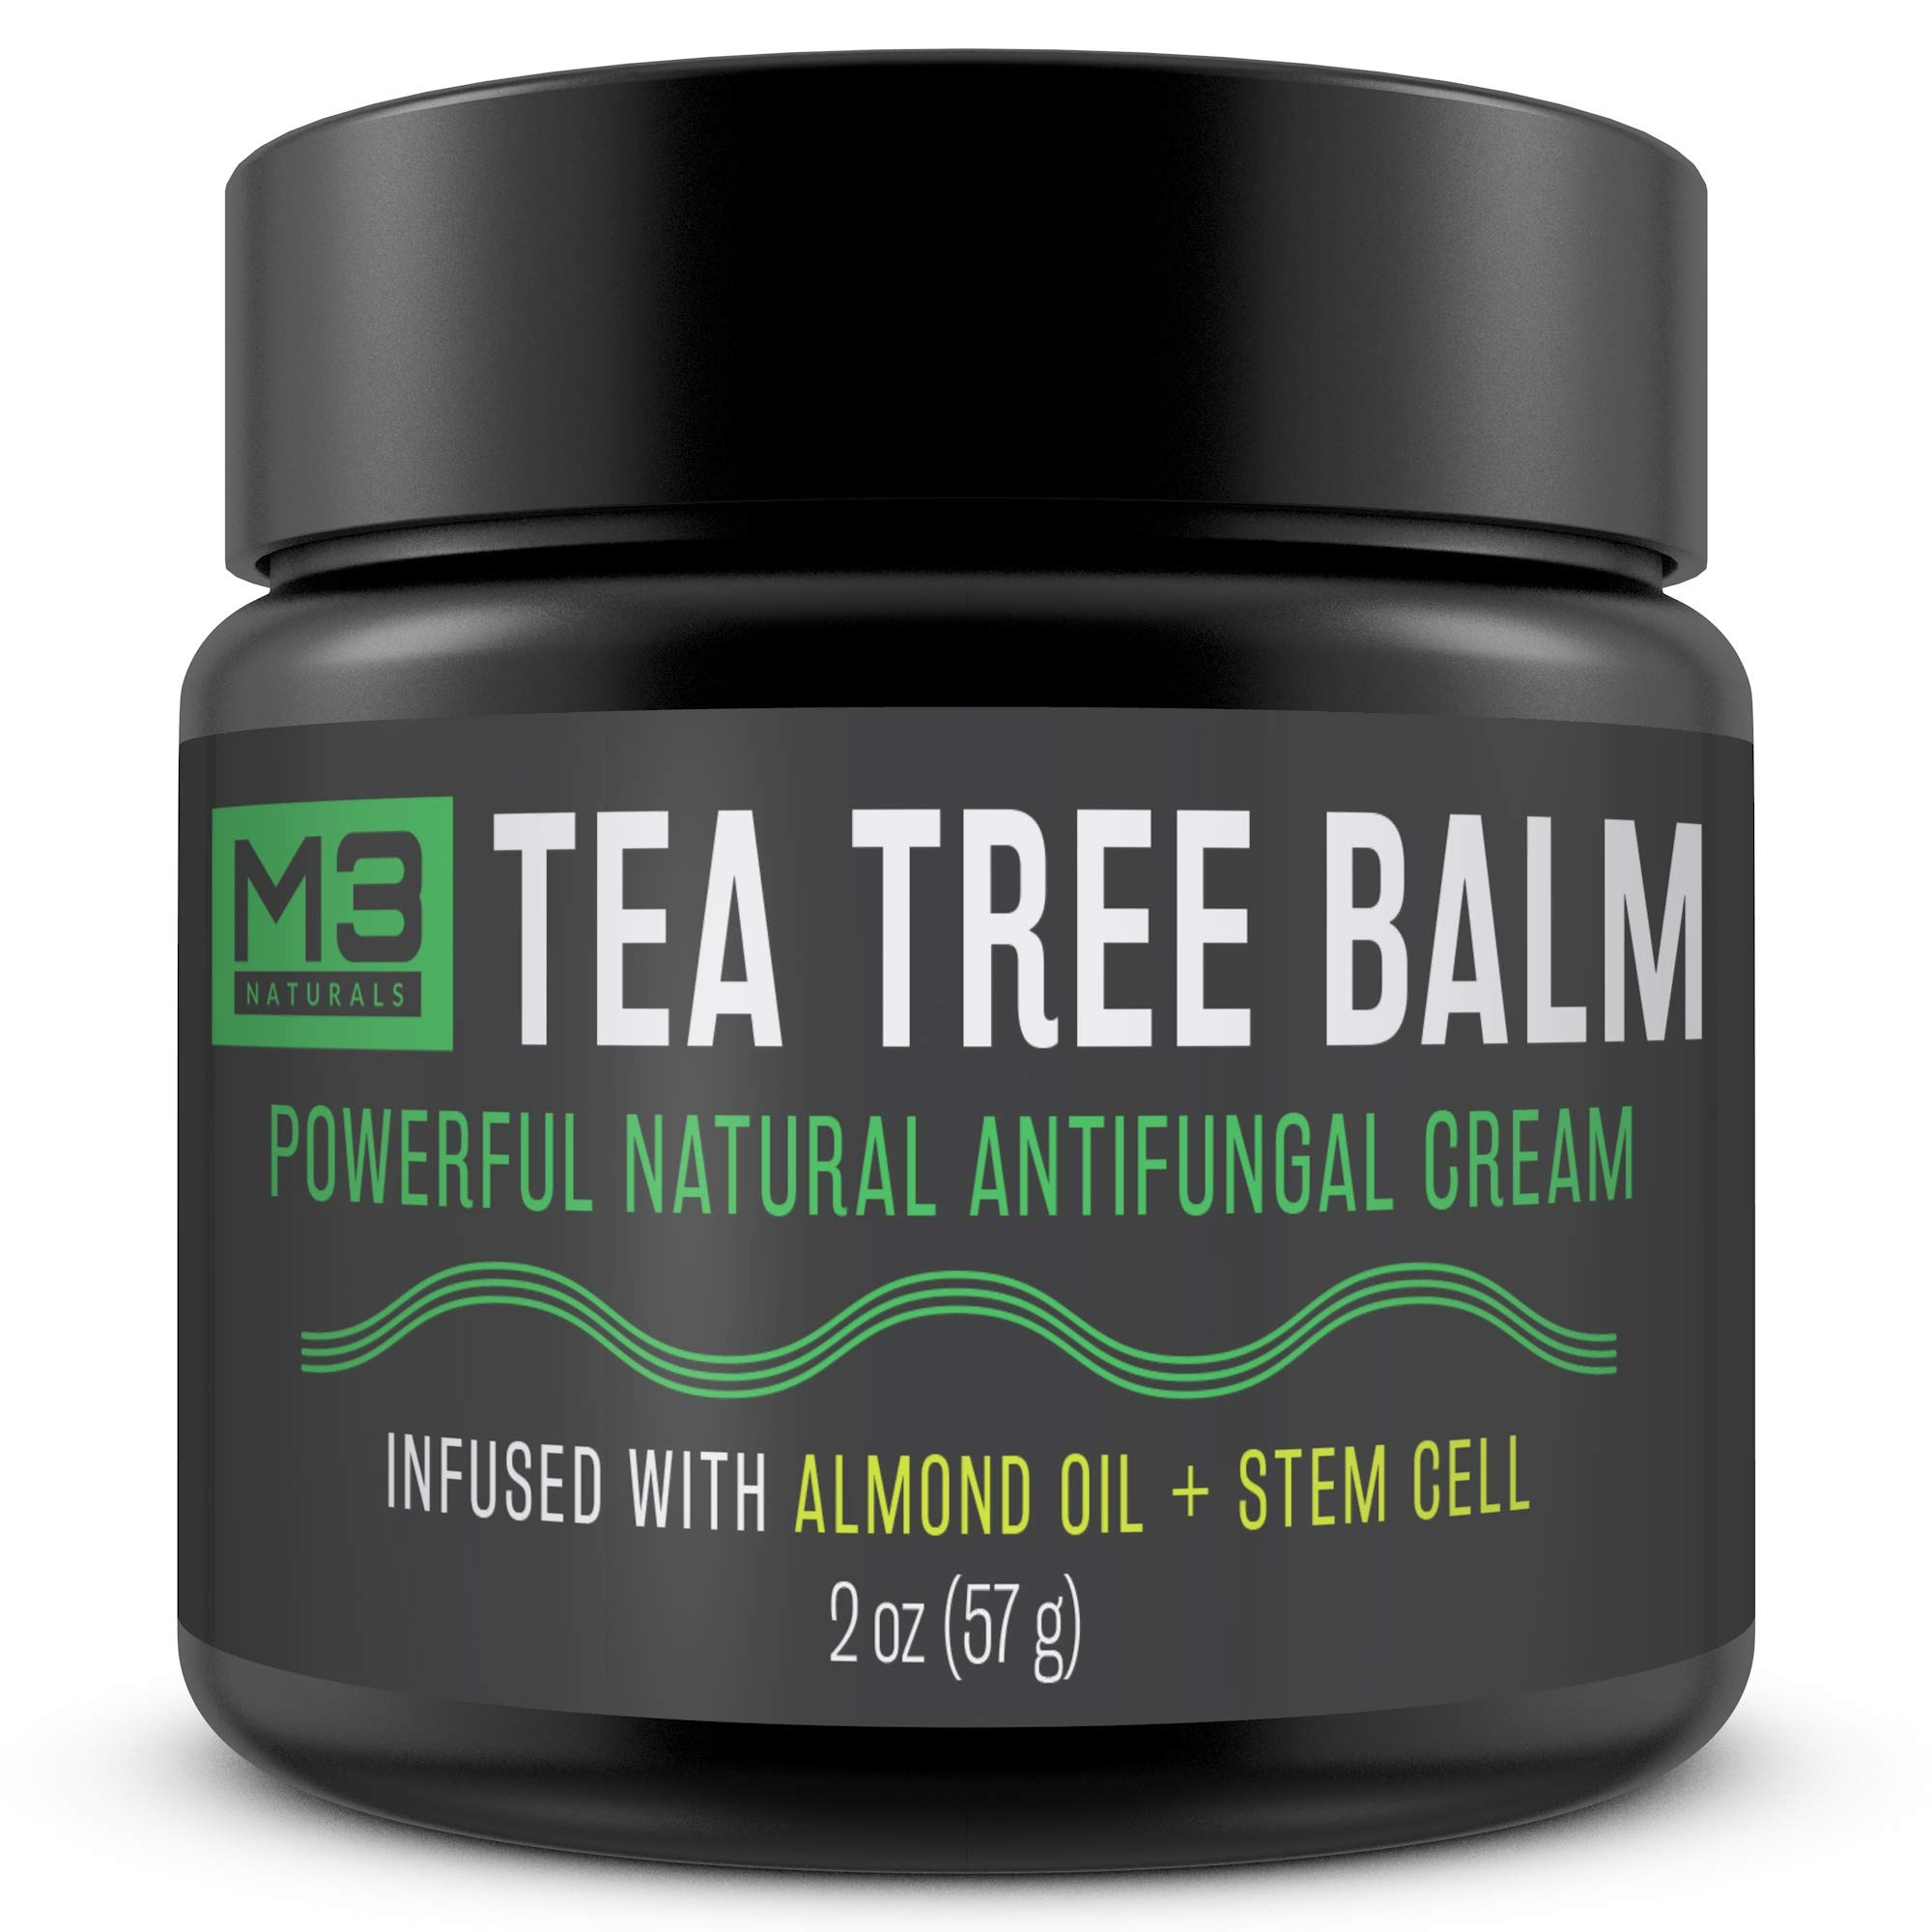 M3 Naturals Tea Tree Balm Infused with Almond Oil and Stem Cell Powerful All Natural Antifungal Cream Athletes Foot Jock Itch Nail Fungus Skin Care Irritation Anti Fungal 2 OZ by M3 Naturals